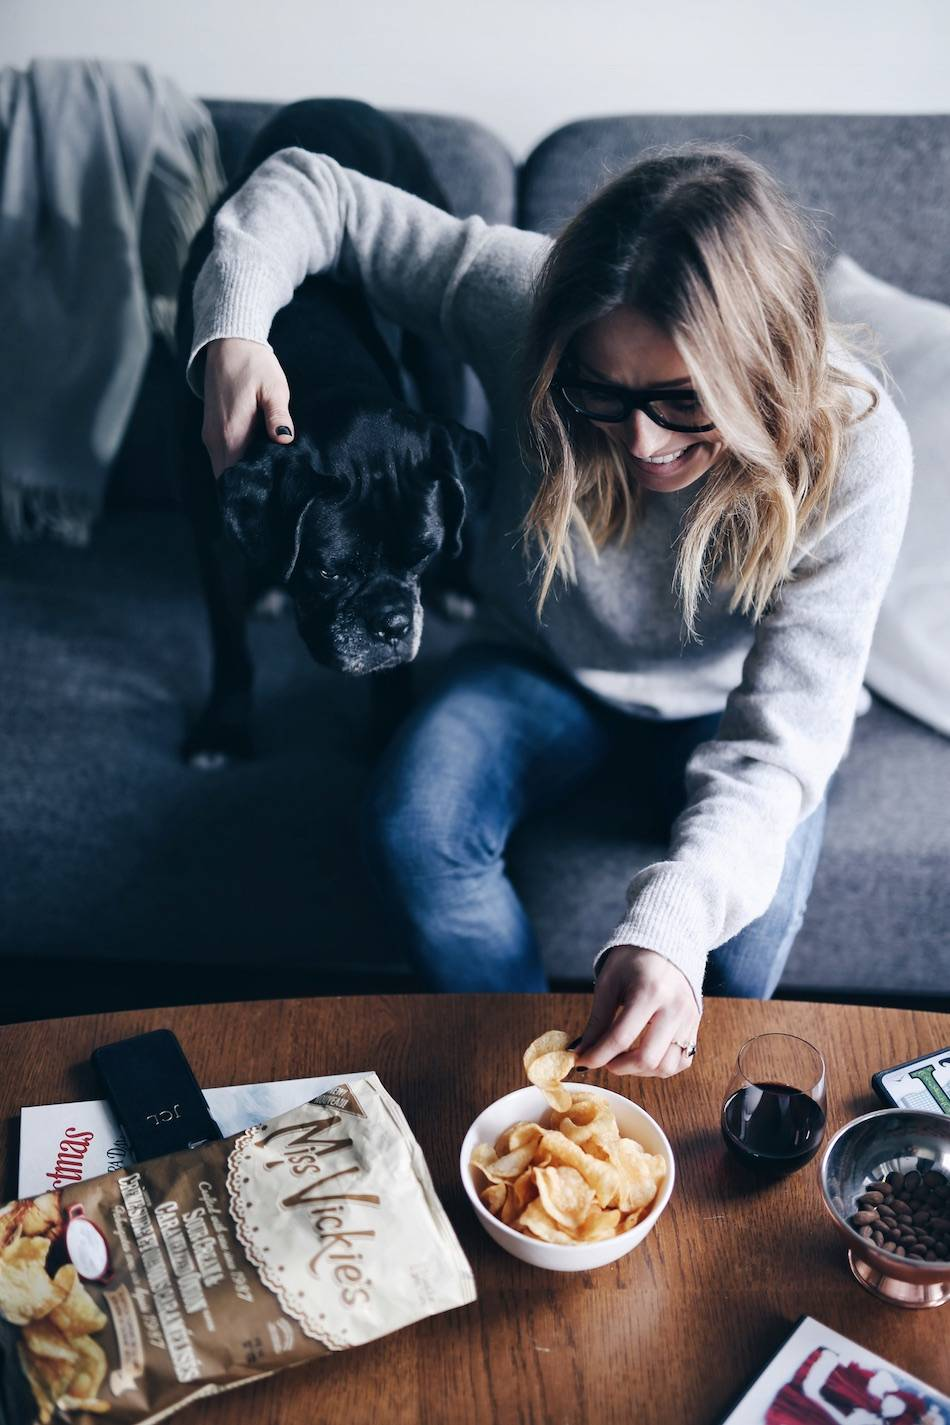 style-and-beauty-blogger-jill-lansky-of-the-august-diaries-top-christmas-movies-2016-snacks-miss-vickies